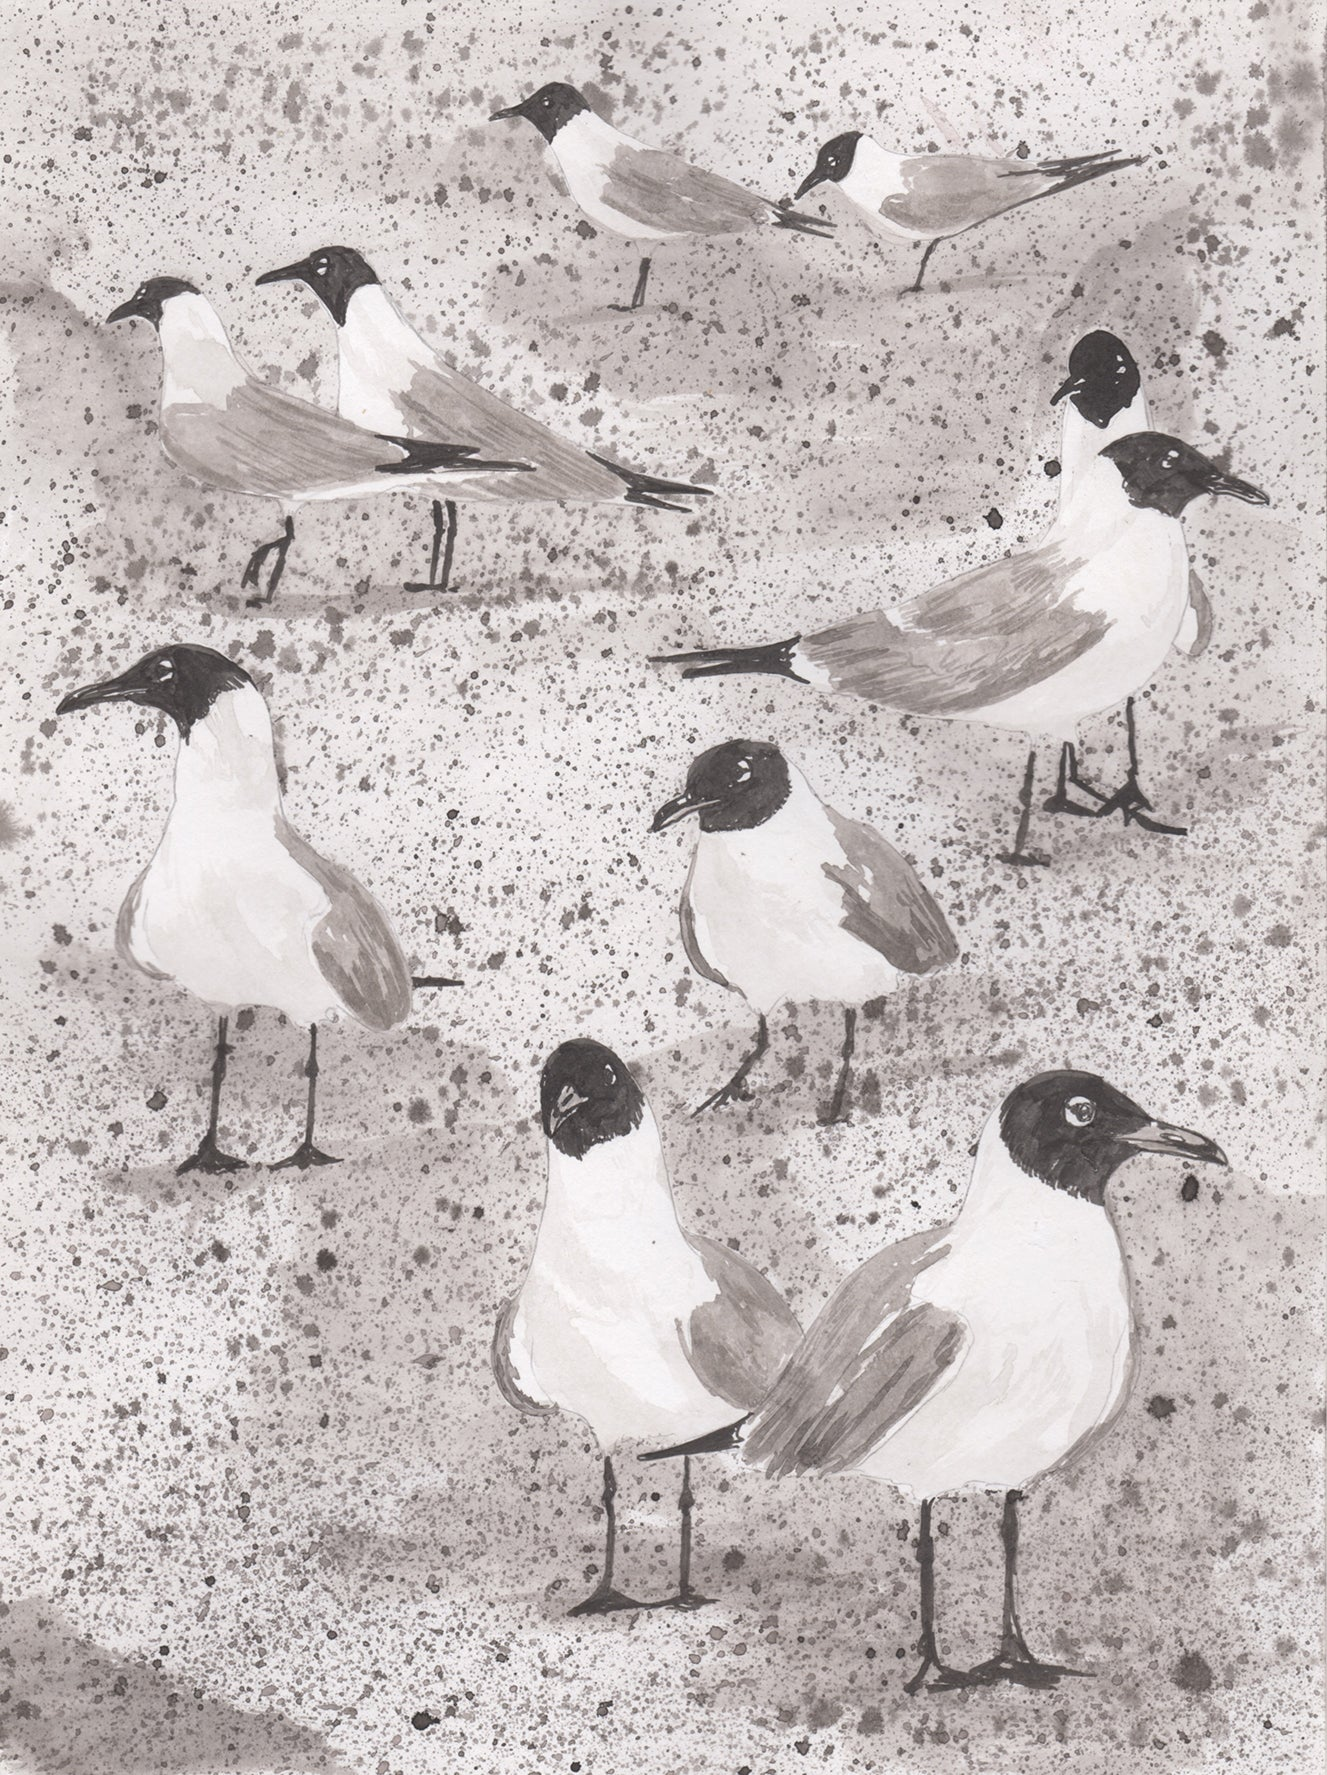 Laughing Gull Ink on paper by Aimee Lusty